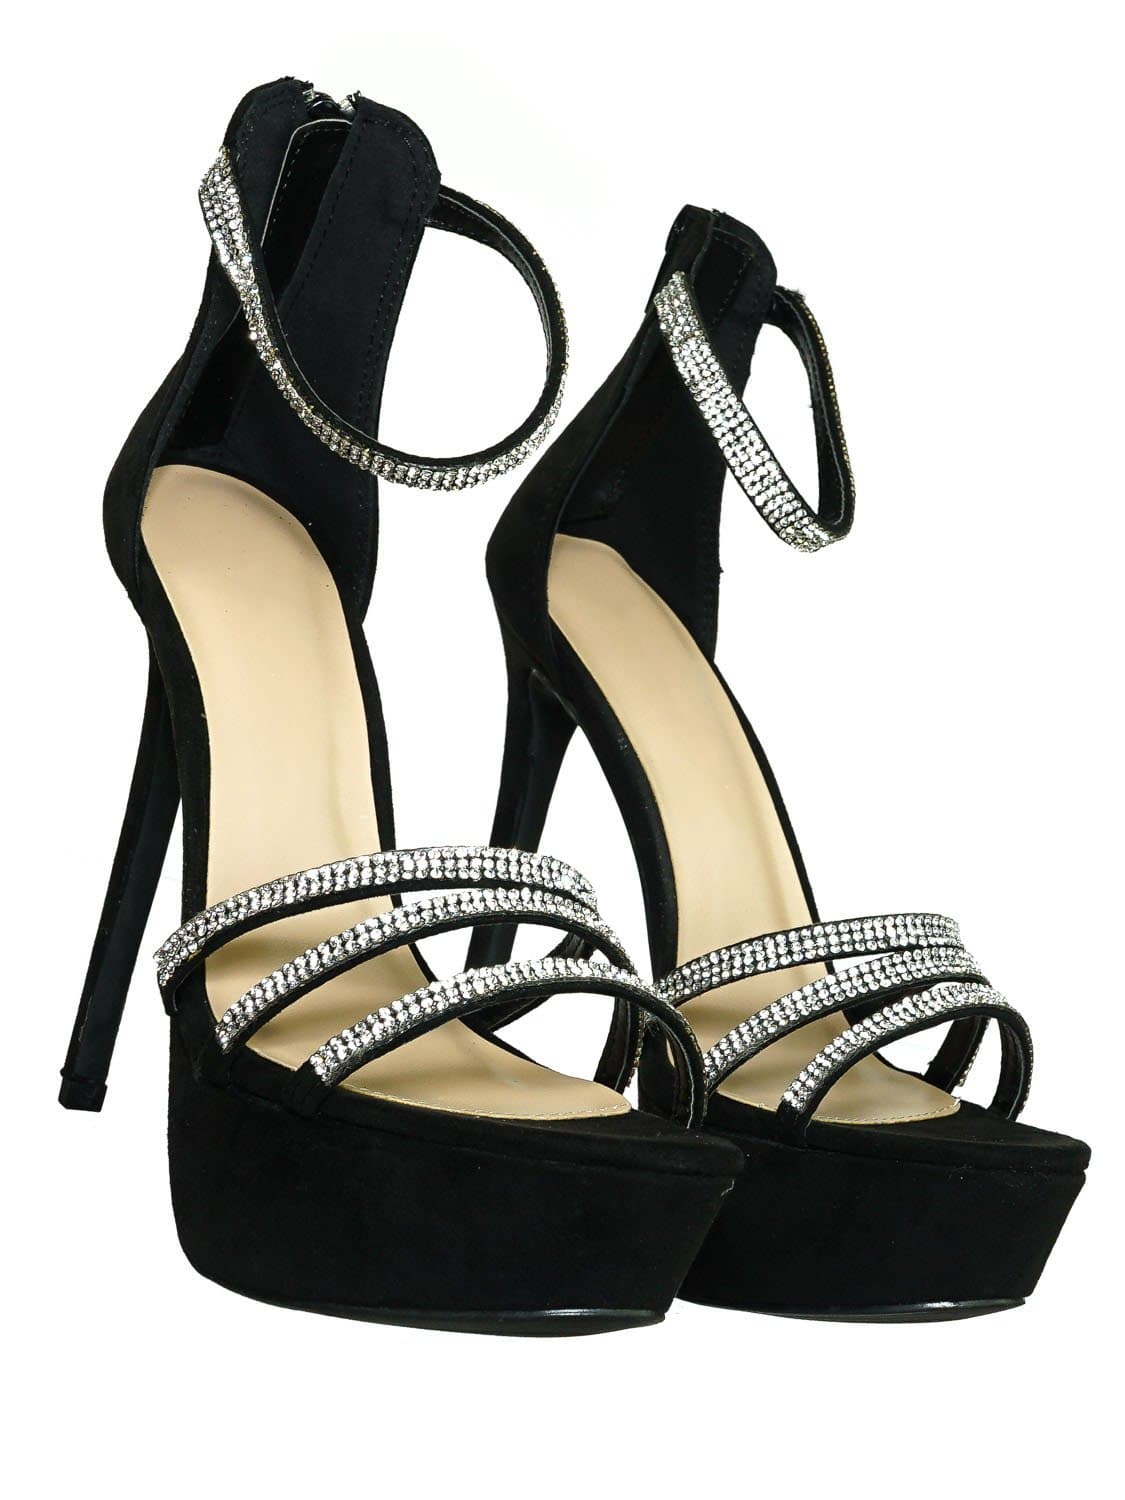 Malia01 BlkSu Rhinestone High Heel Platform Dress Sandals - Women Ankle Strap Heels